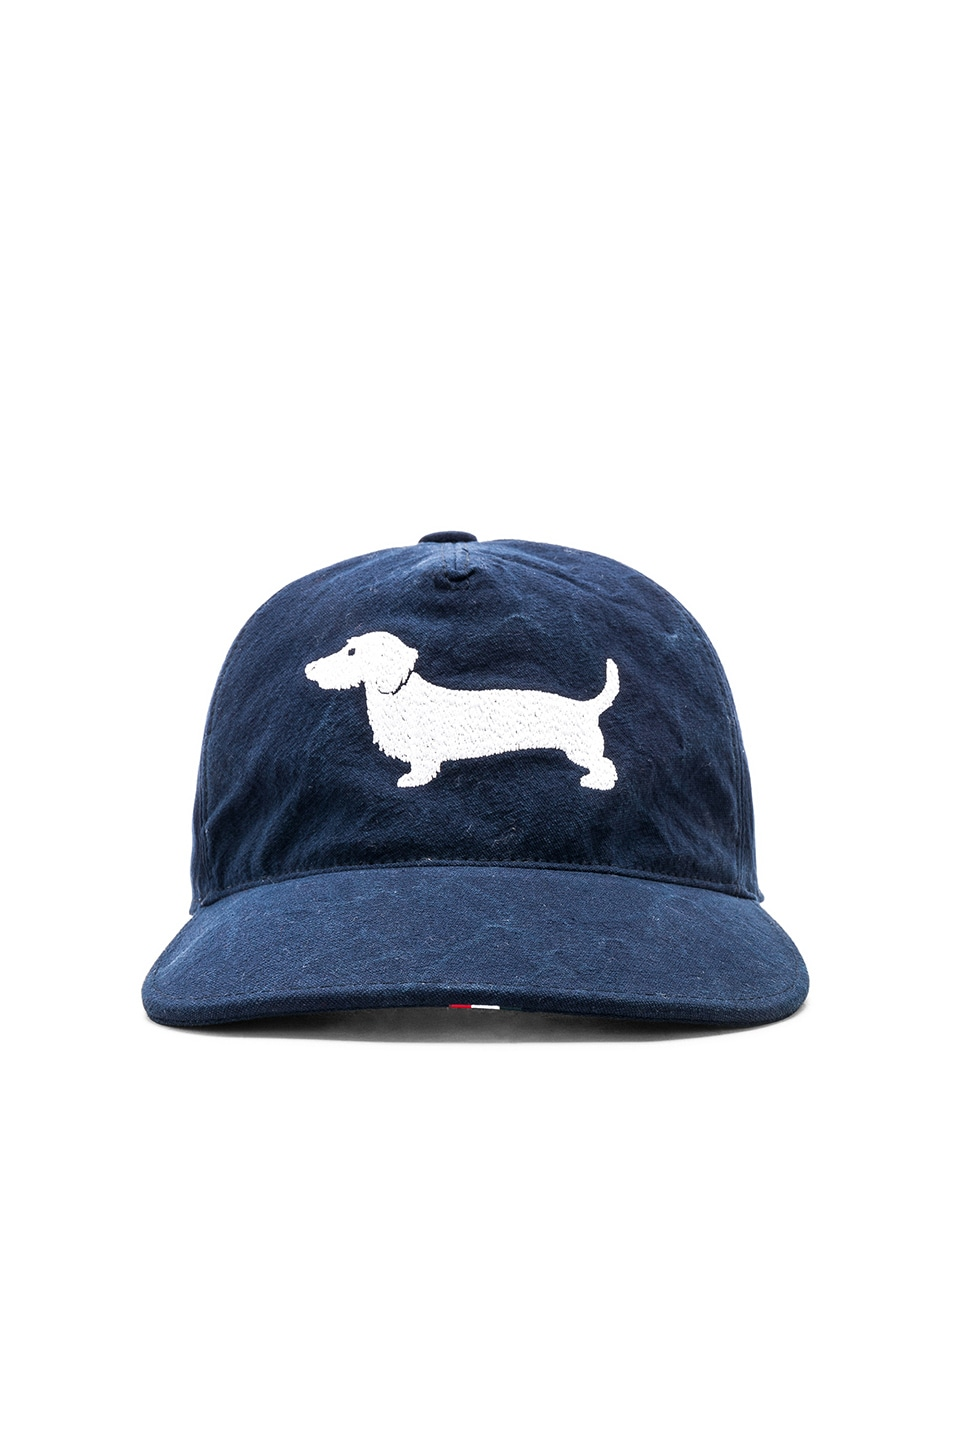 Image 1 of Thom Browne Embroidered Hector 5-Panel Baseball Cap in Navy 96a6e35f3bca